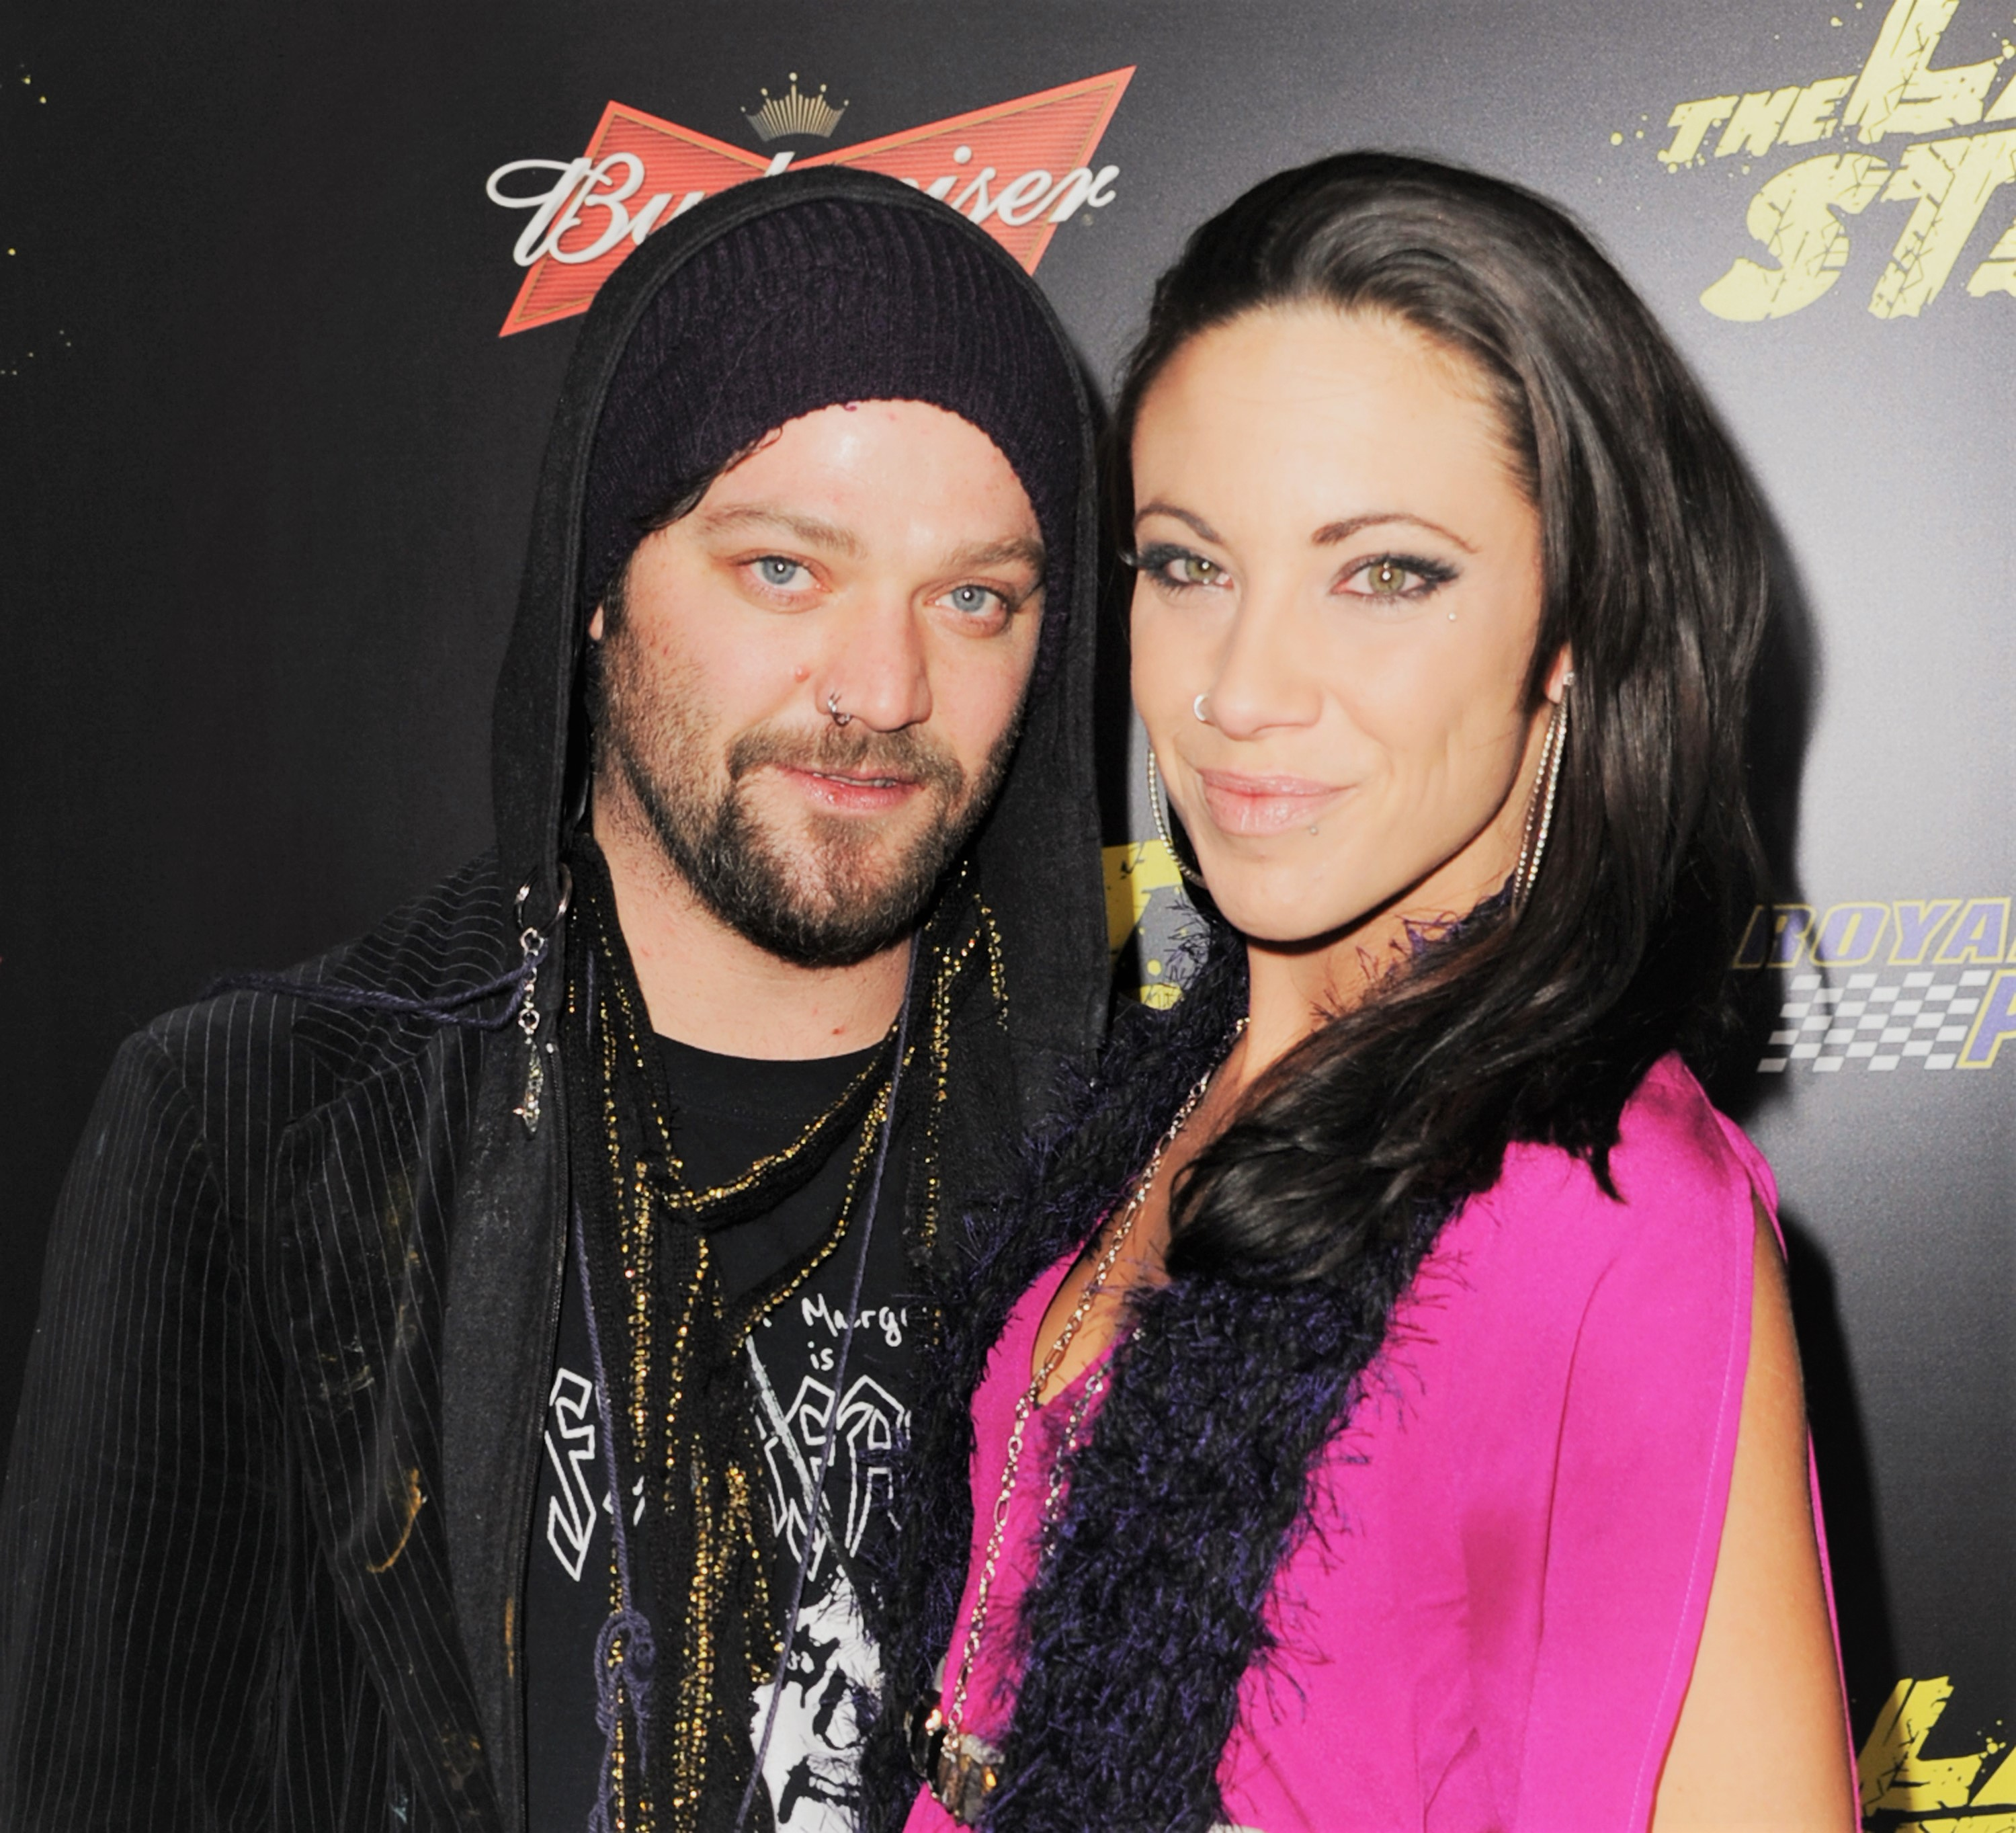 Bam Margera Opens Up About His 'Mental Breakdown' and How His Son, 1, Prevented Him from Suicide